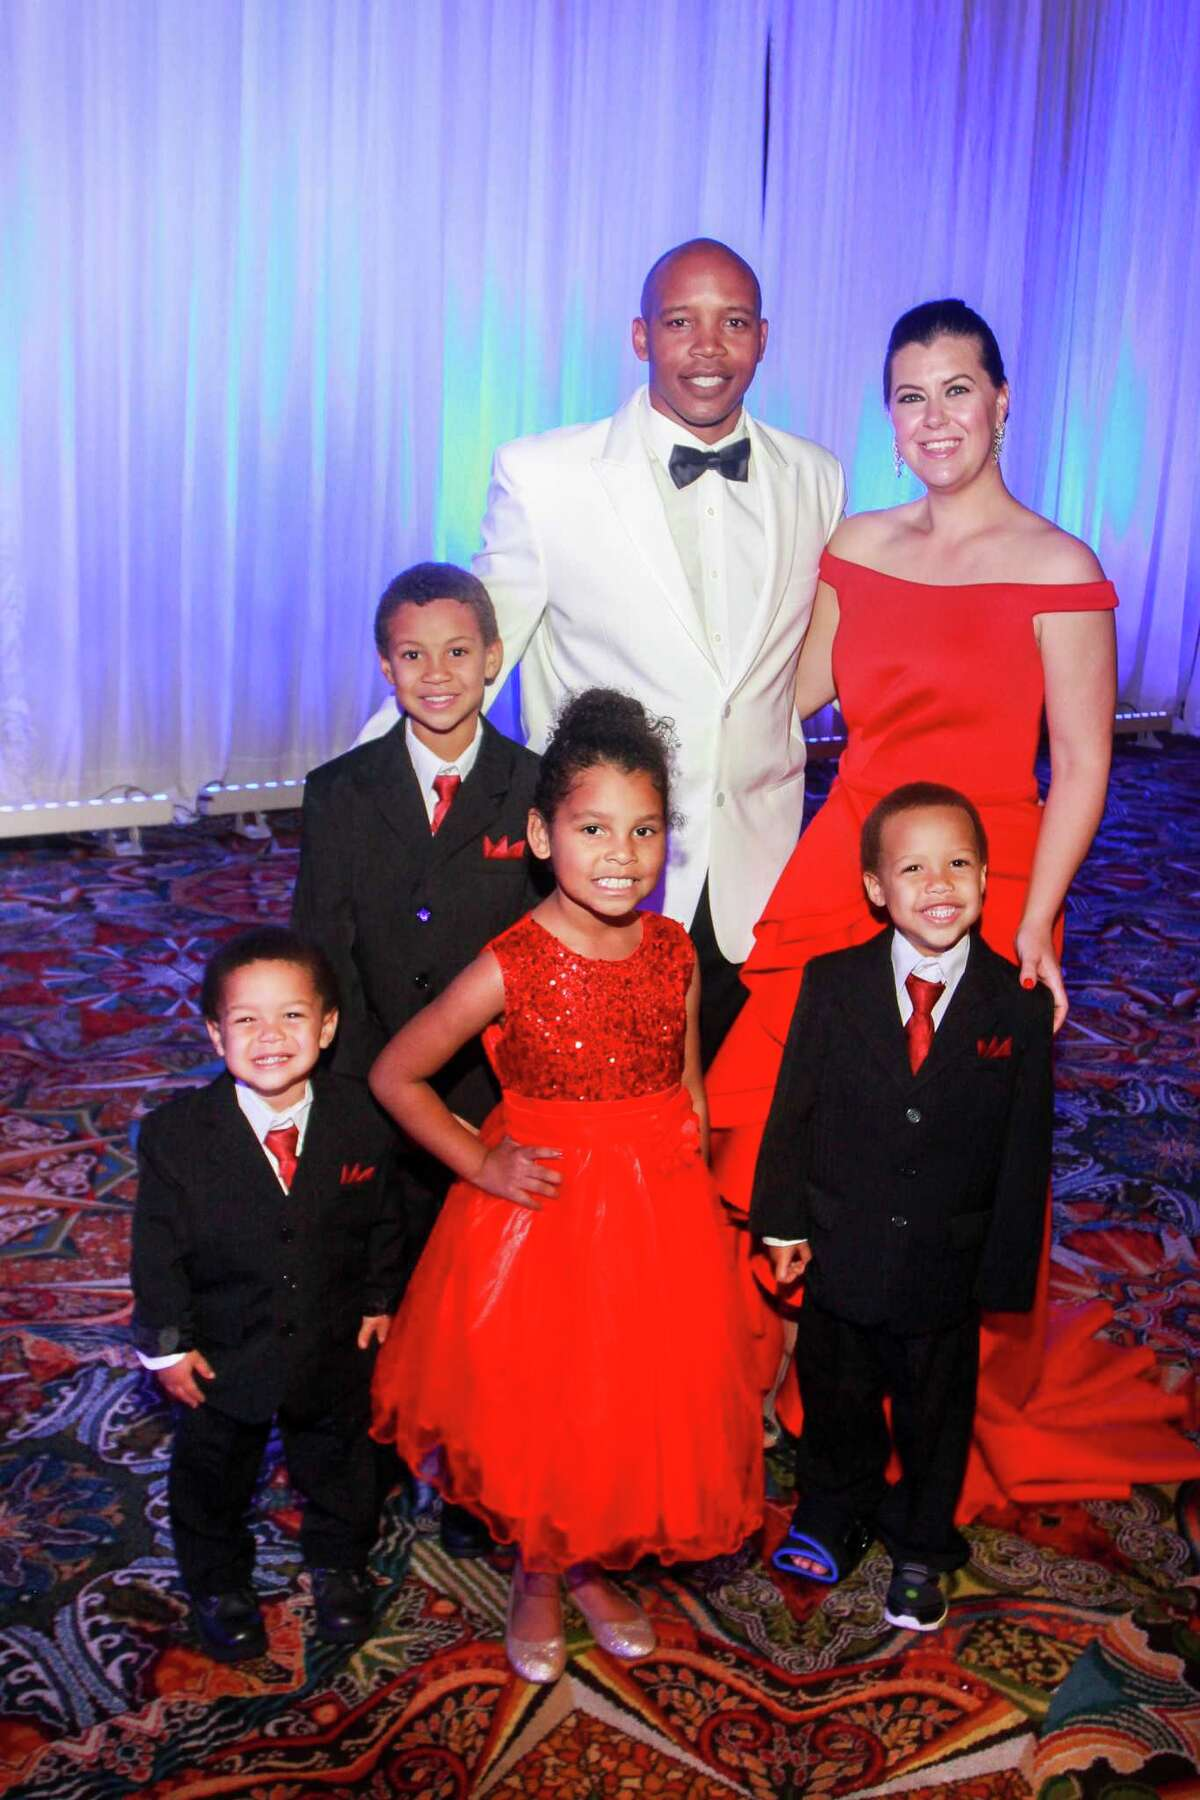 Honorees Kenya and Kelli Cager, and their children, Kohen, from left, Khaden, Kiearra and Khristian, at the Heart Ball at Hilton Americas Houston.